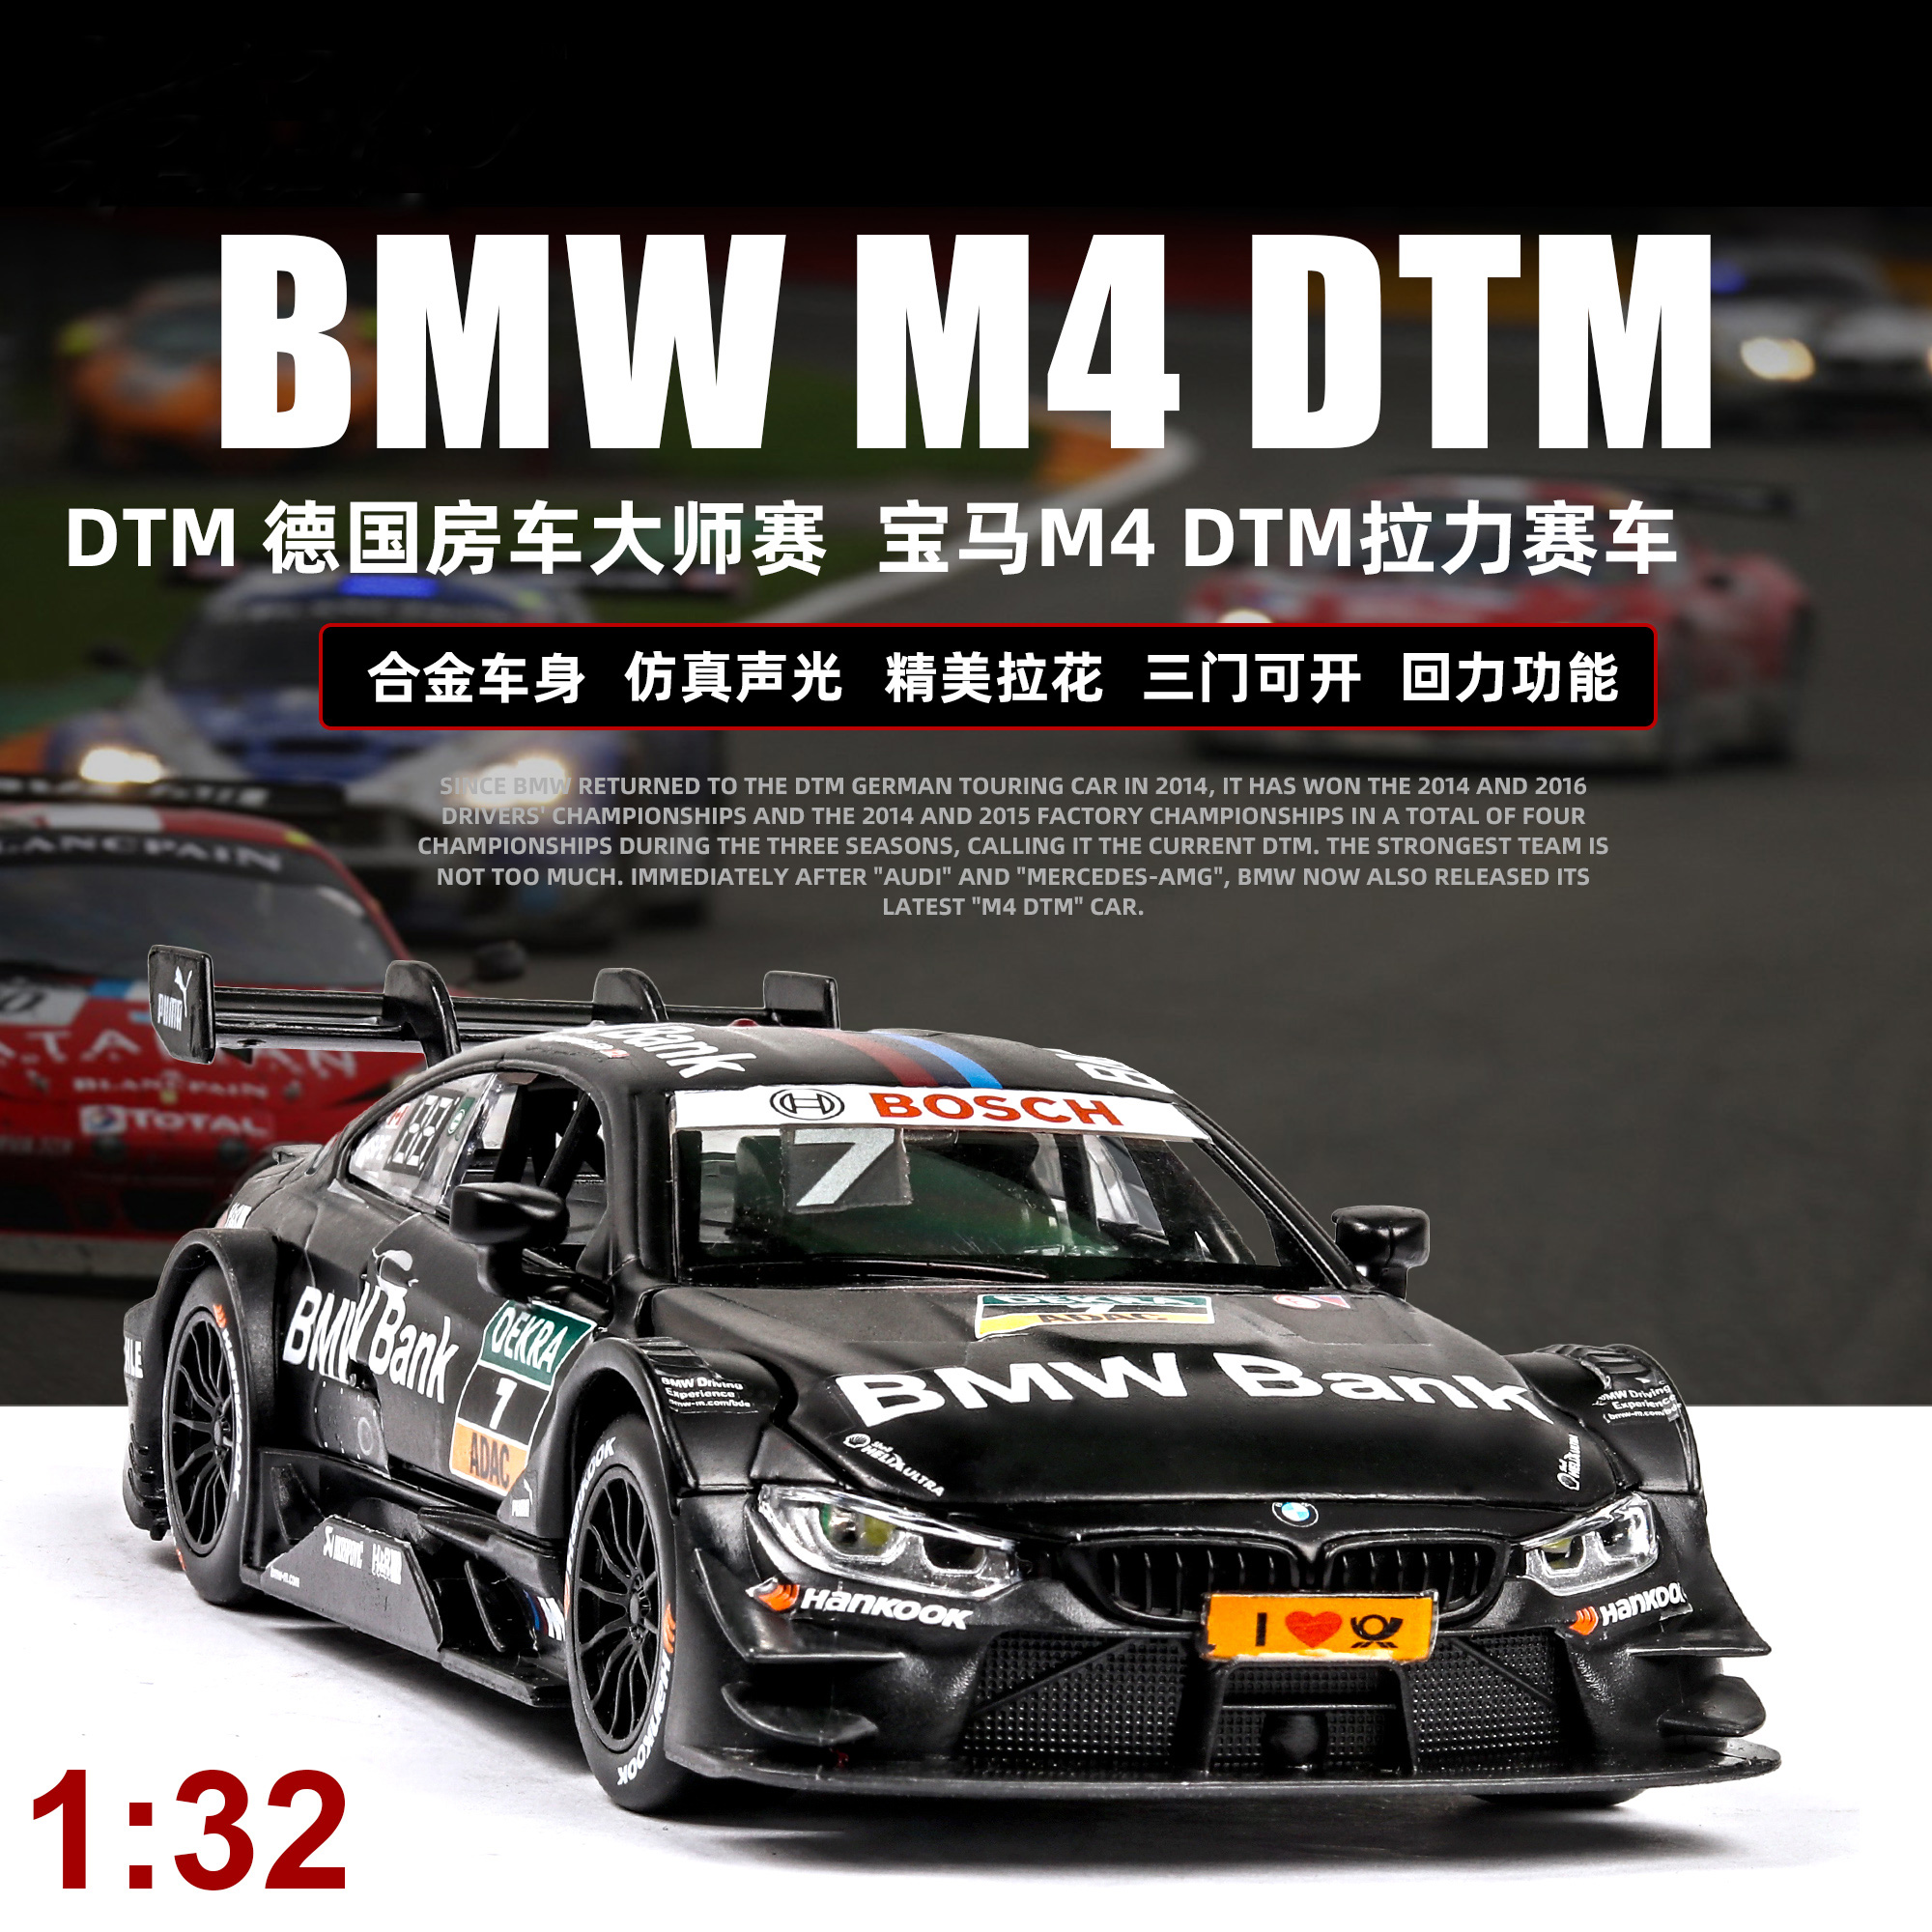 1:32 Alloy Sports Car Model BMW M4 DTM Rally Car Light Pull Back Door Toy For Children Collection Gift Hot Toy Car Hot-Wheel